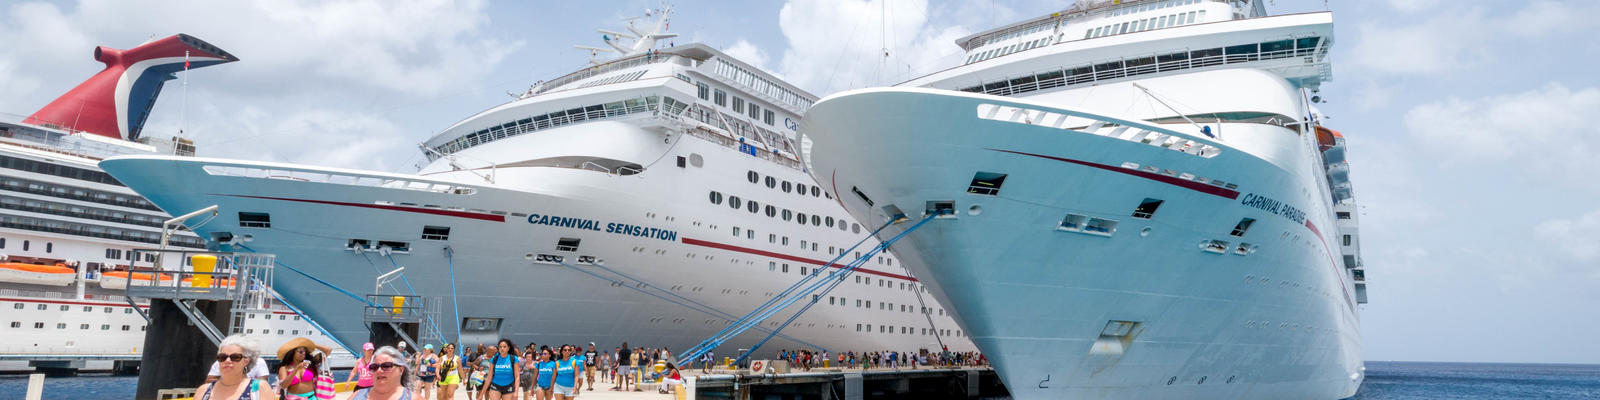 5 Things Not to Do on Your First Cruise (Photo: Cruise Critic)